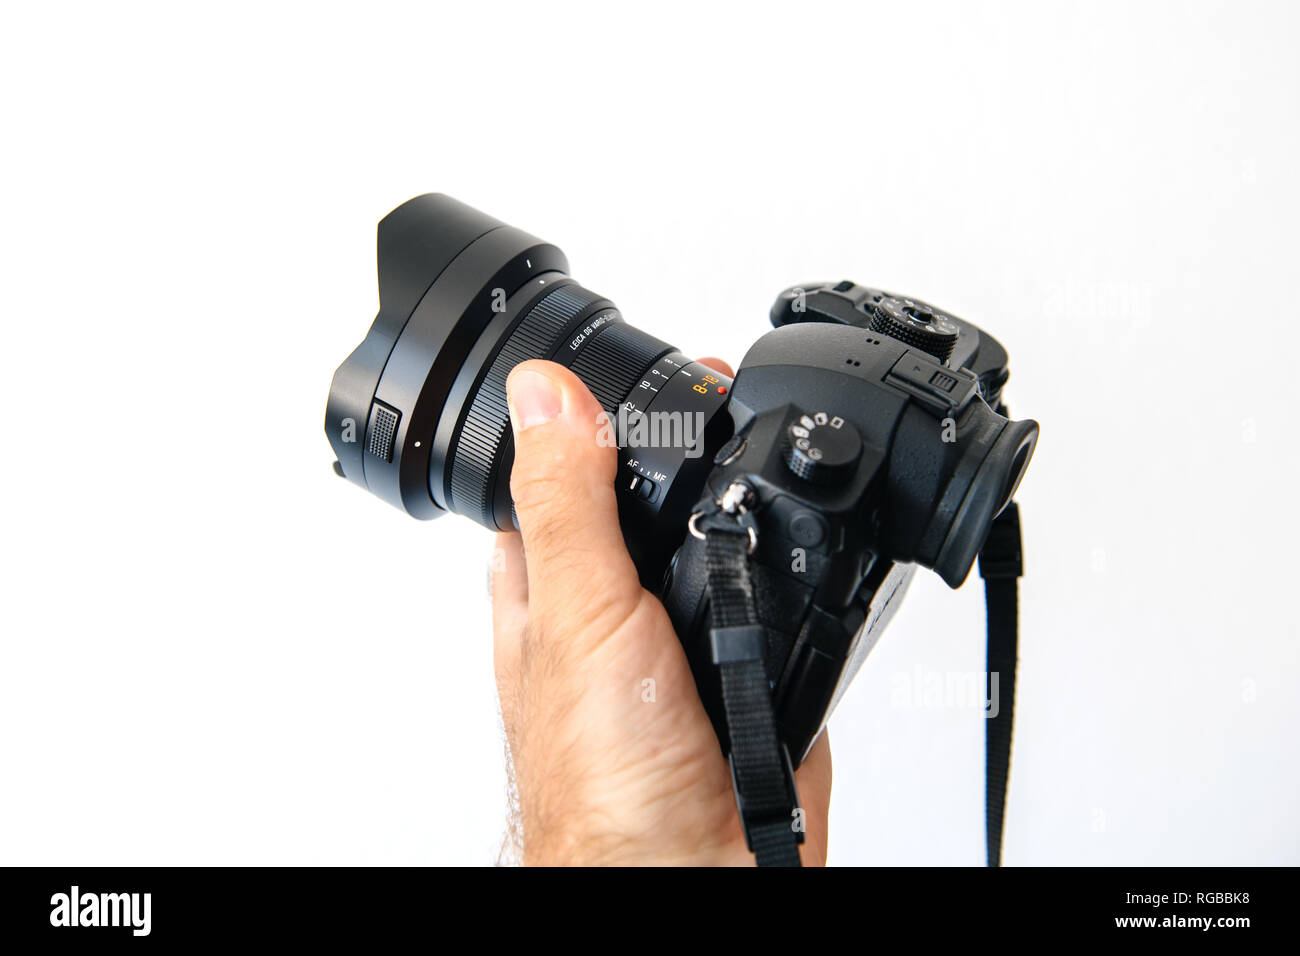 PARIS, FRANCE - JUN 30, 2018: Man showing new Panasonic Lumix DMC-GH5 - and newest Leica Vario-Elmarit 8-18 Micro Four Thirds System digital still and video camera with 4K 10 bit Video recording internal capability - Stock Image